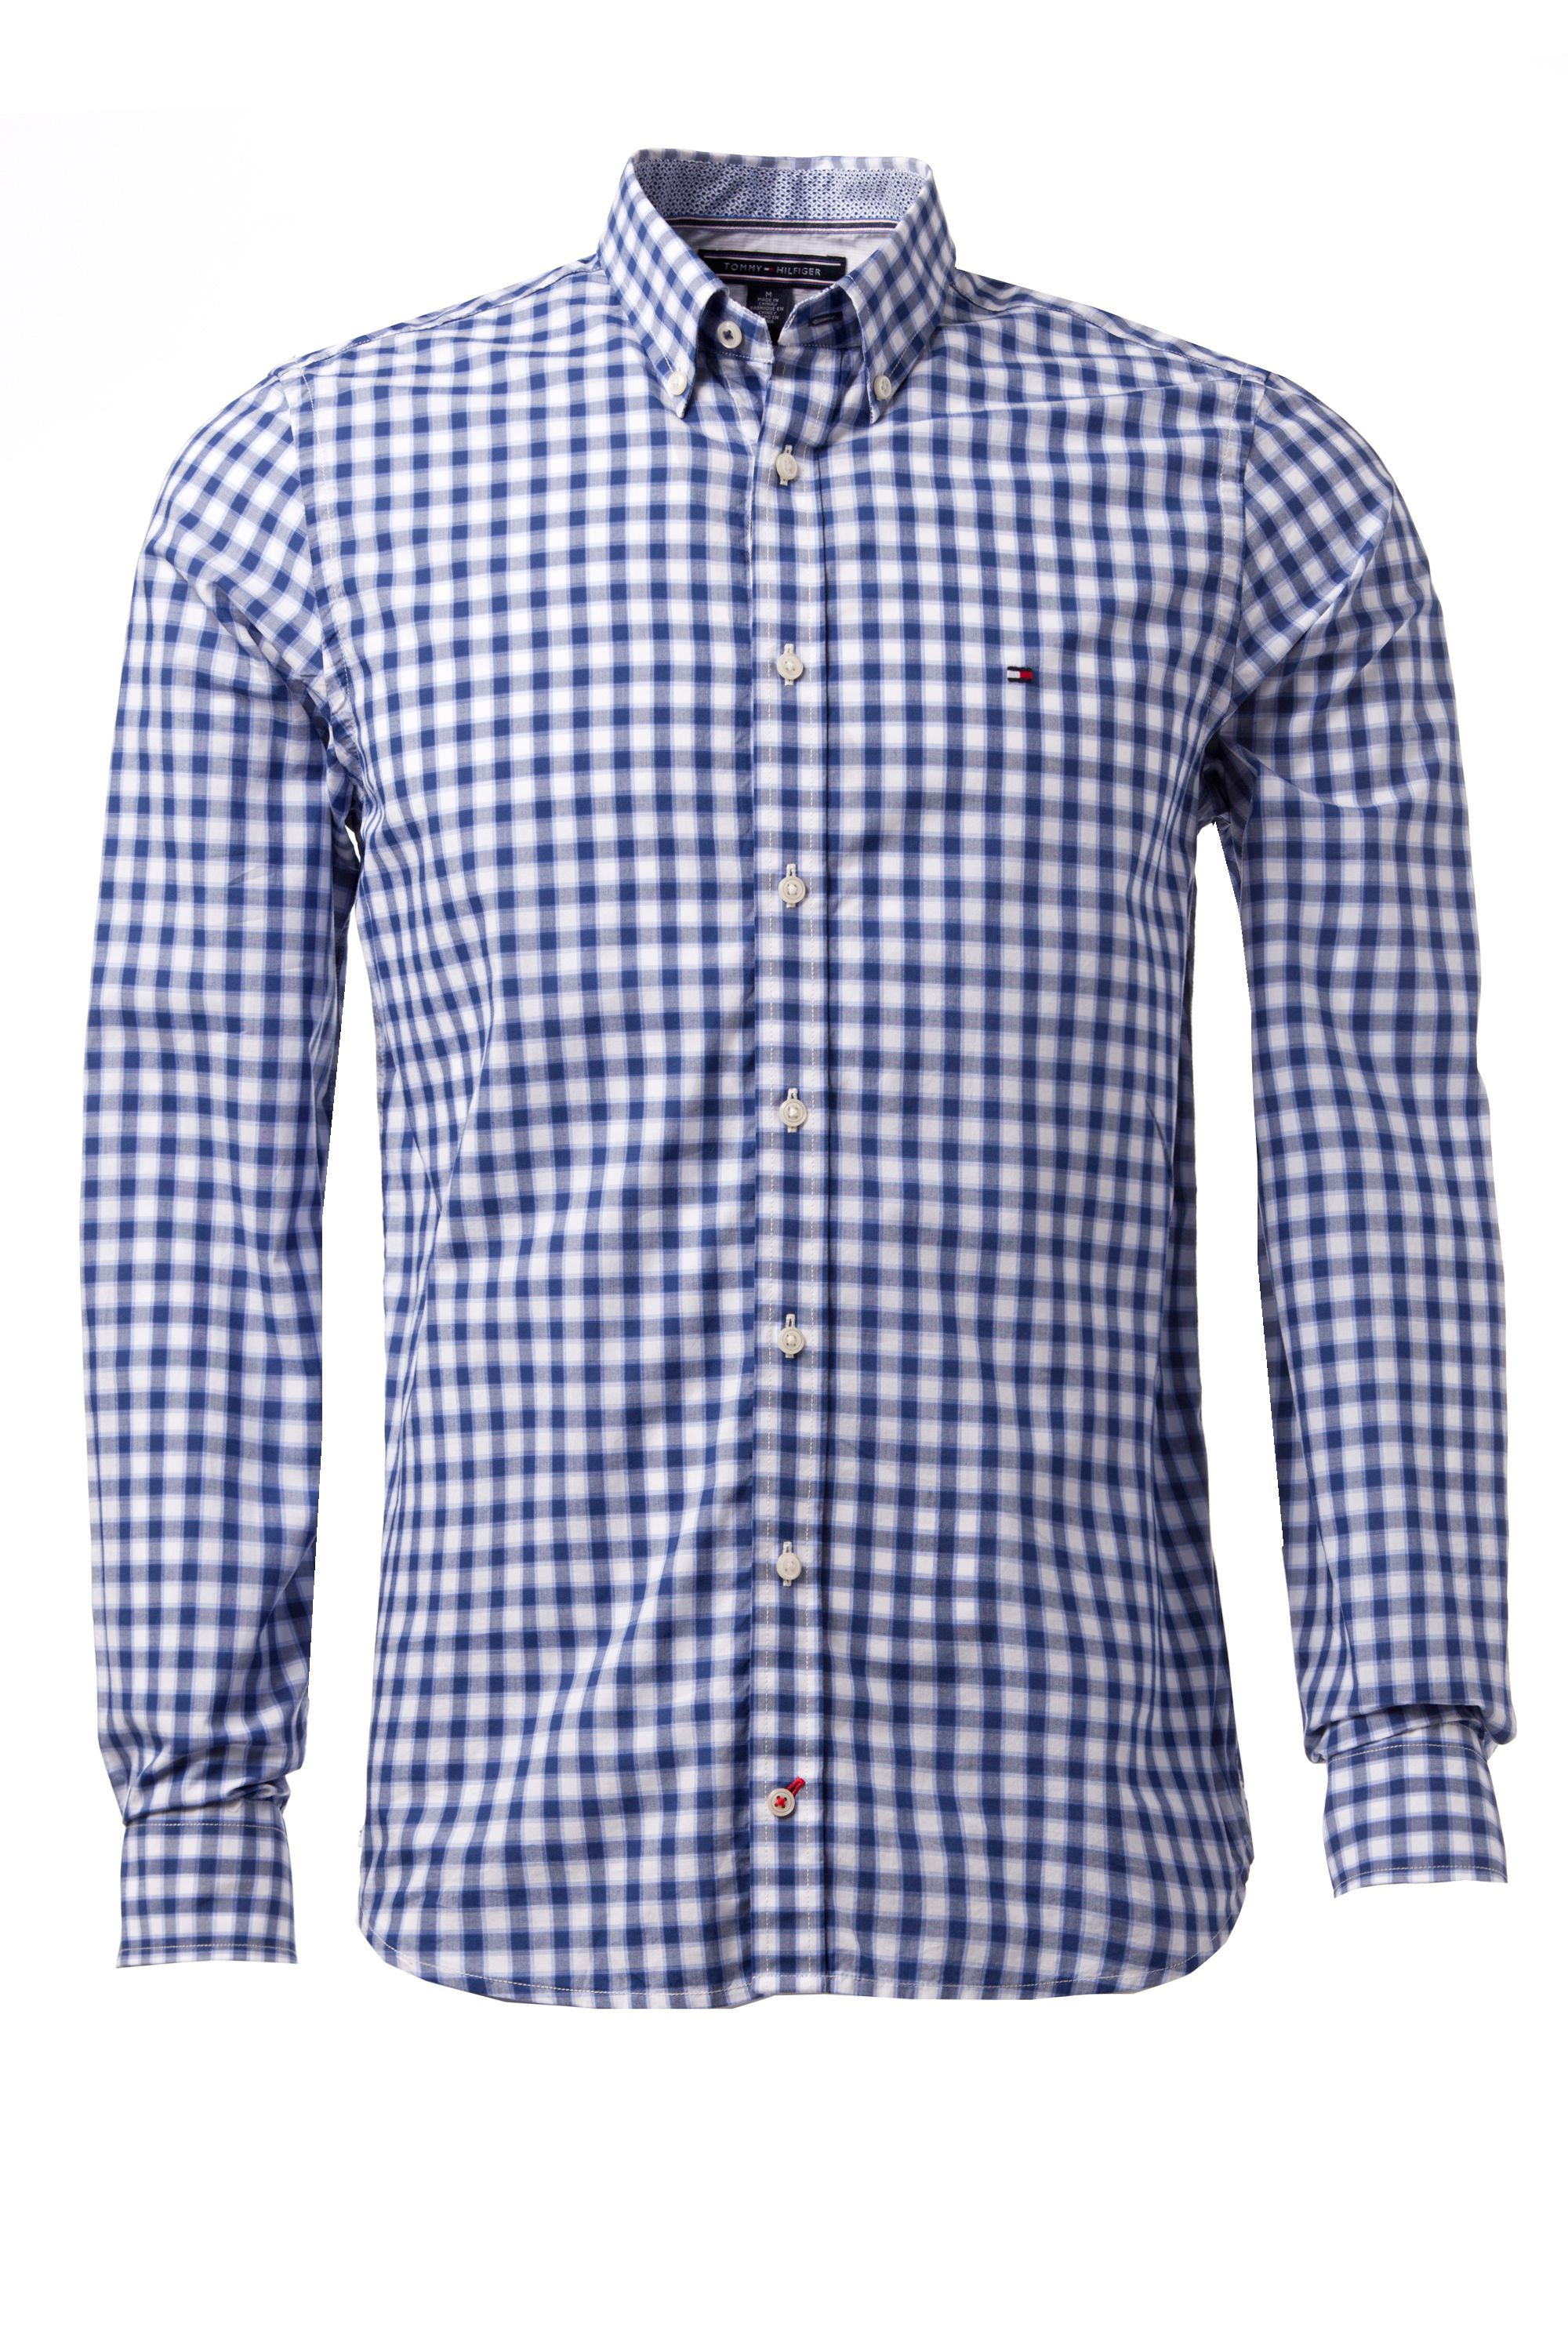 Lyst tommy hilfiger varick gingham long sleeve shirt in for Blue and white long sleeve shirt